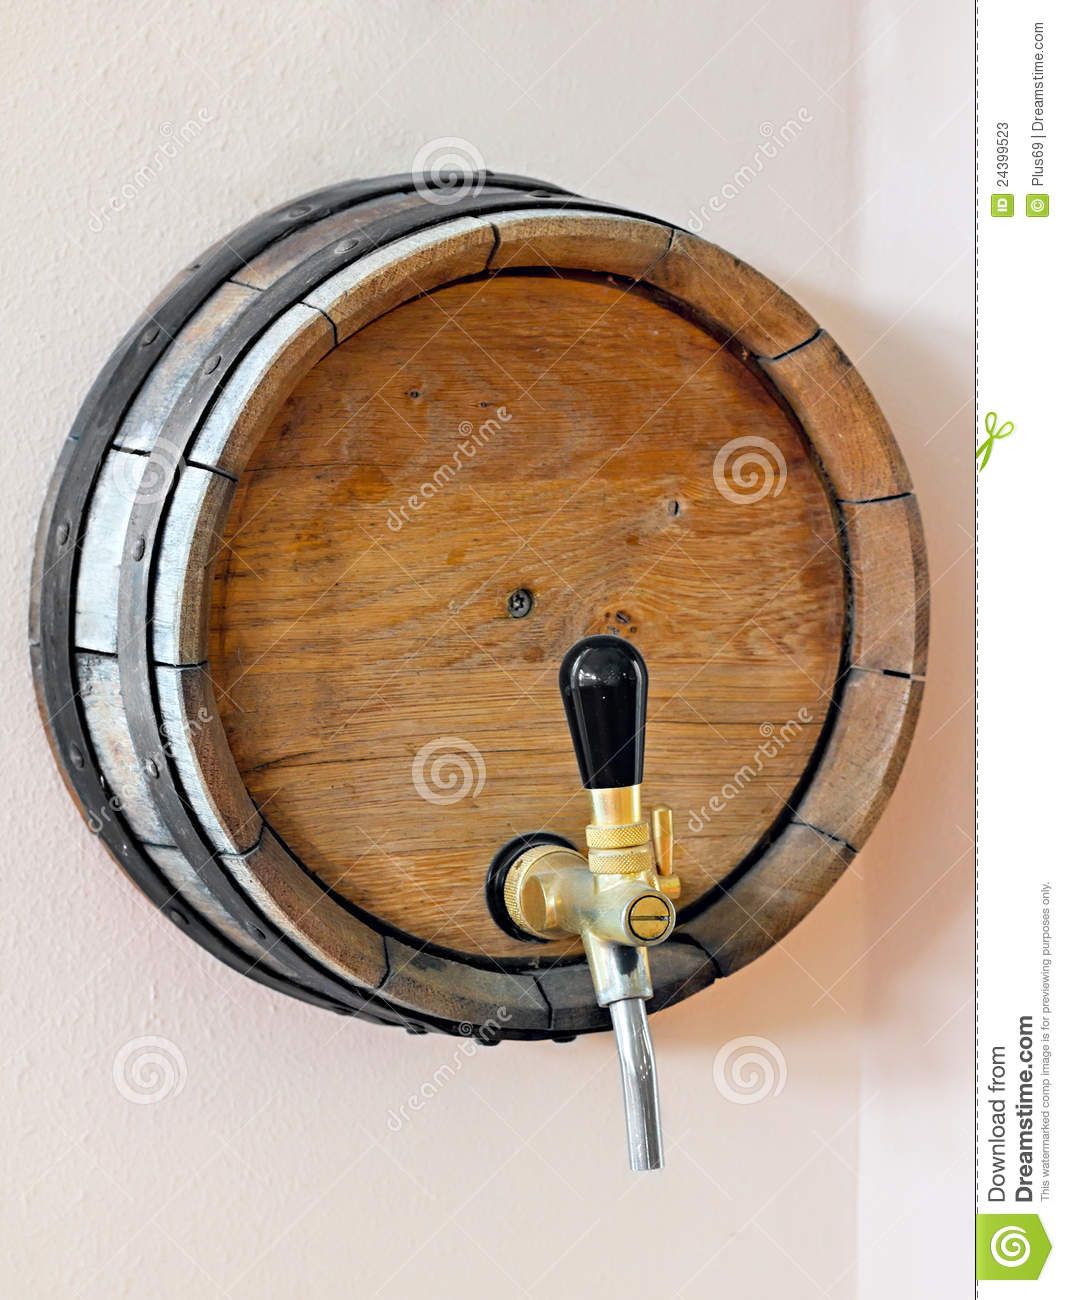 Wooden barrel with a tap